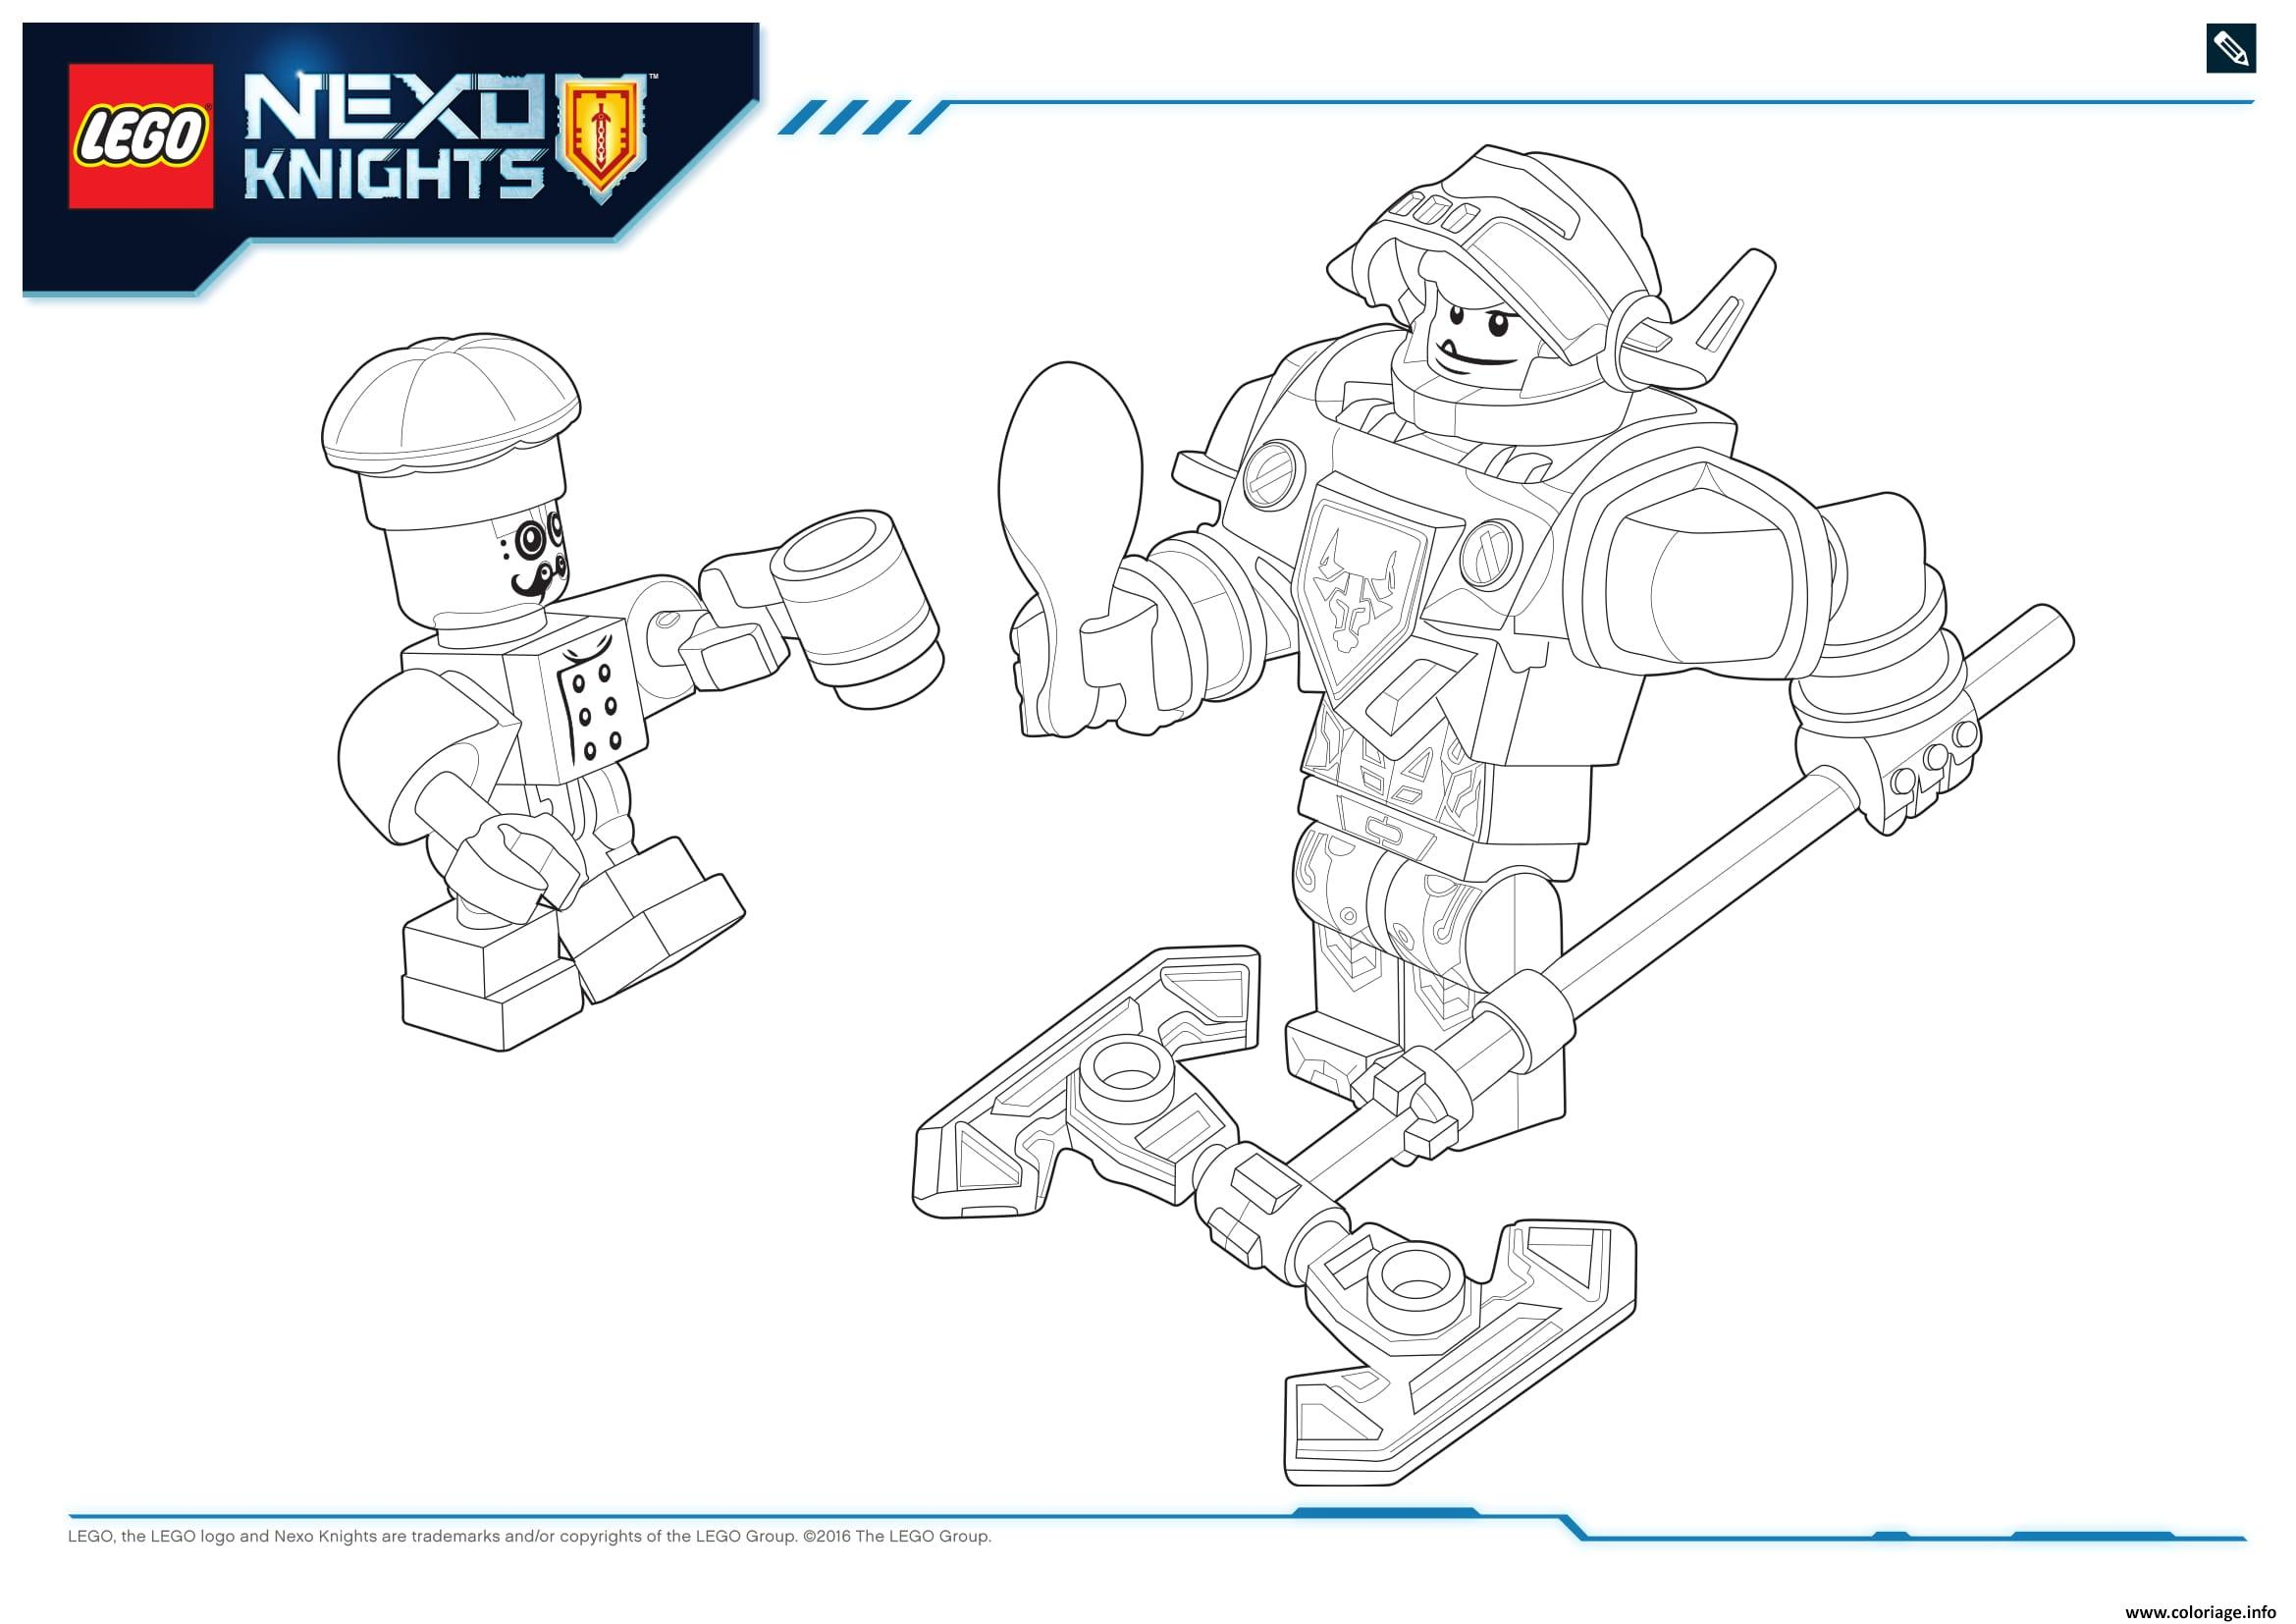 nexo knight coloring pages - coloriage lego nexo knights products 8